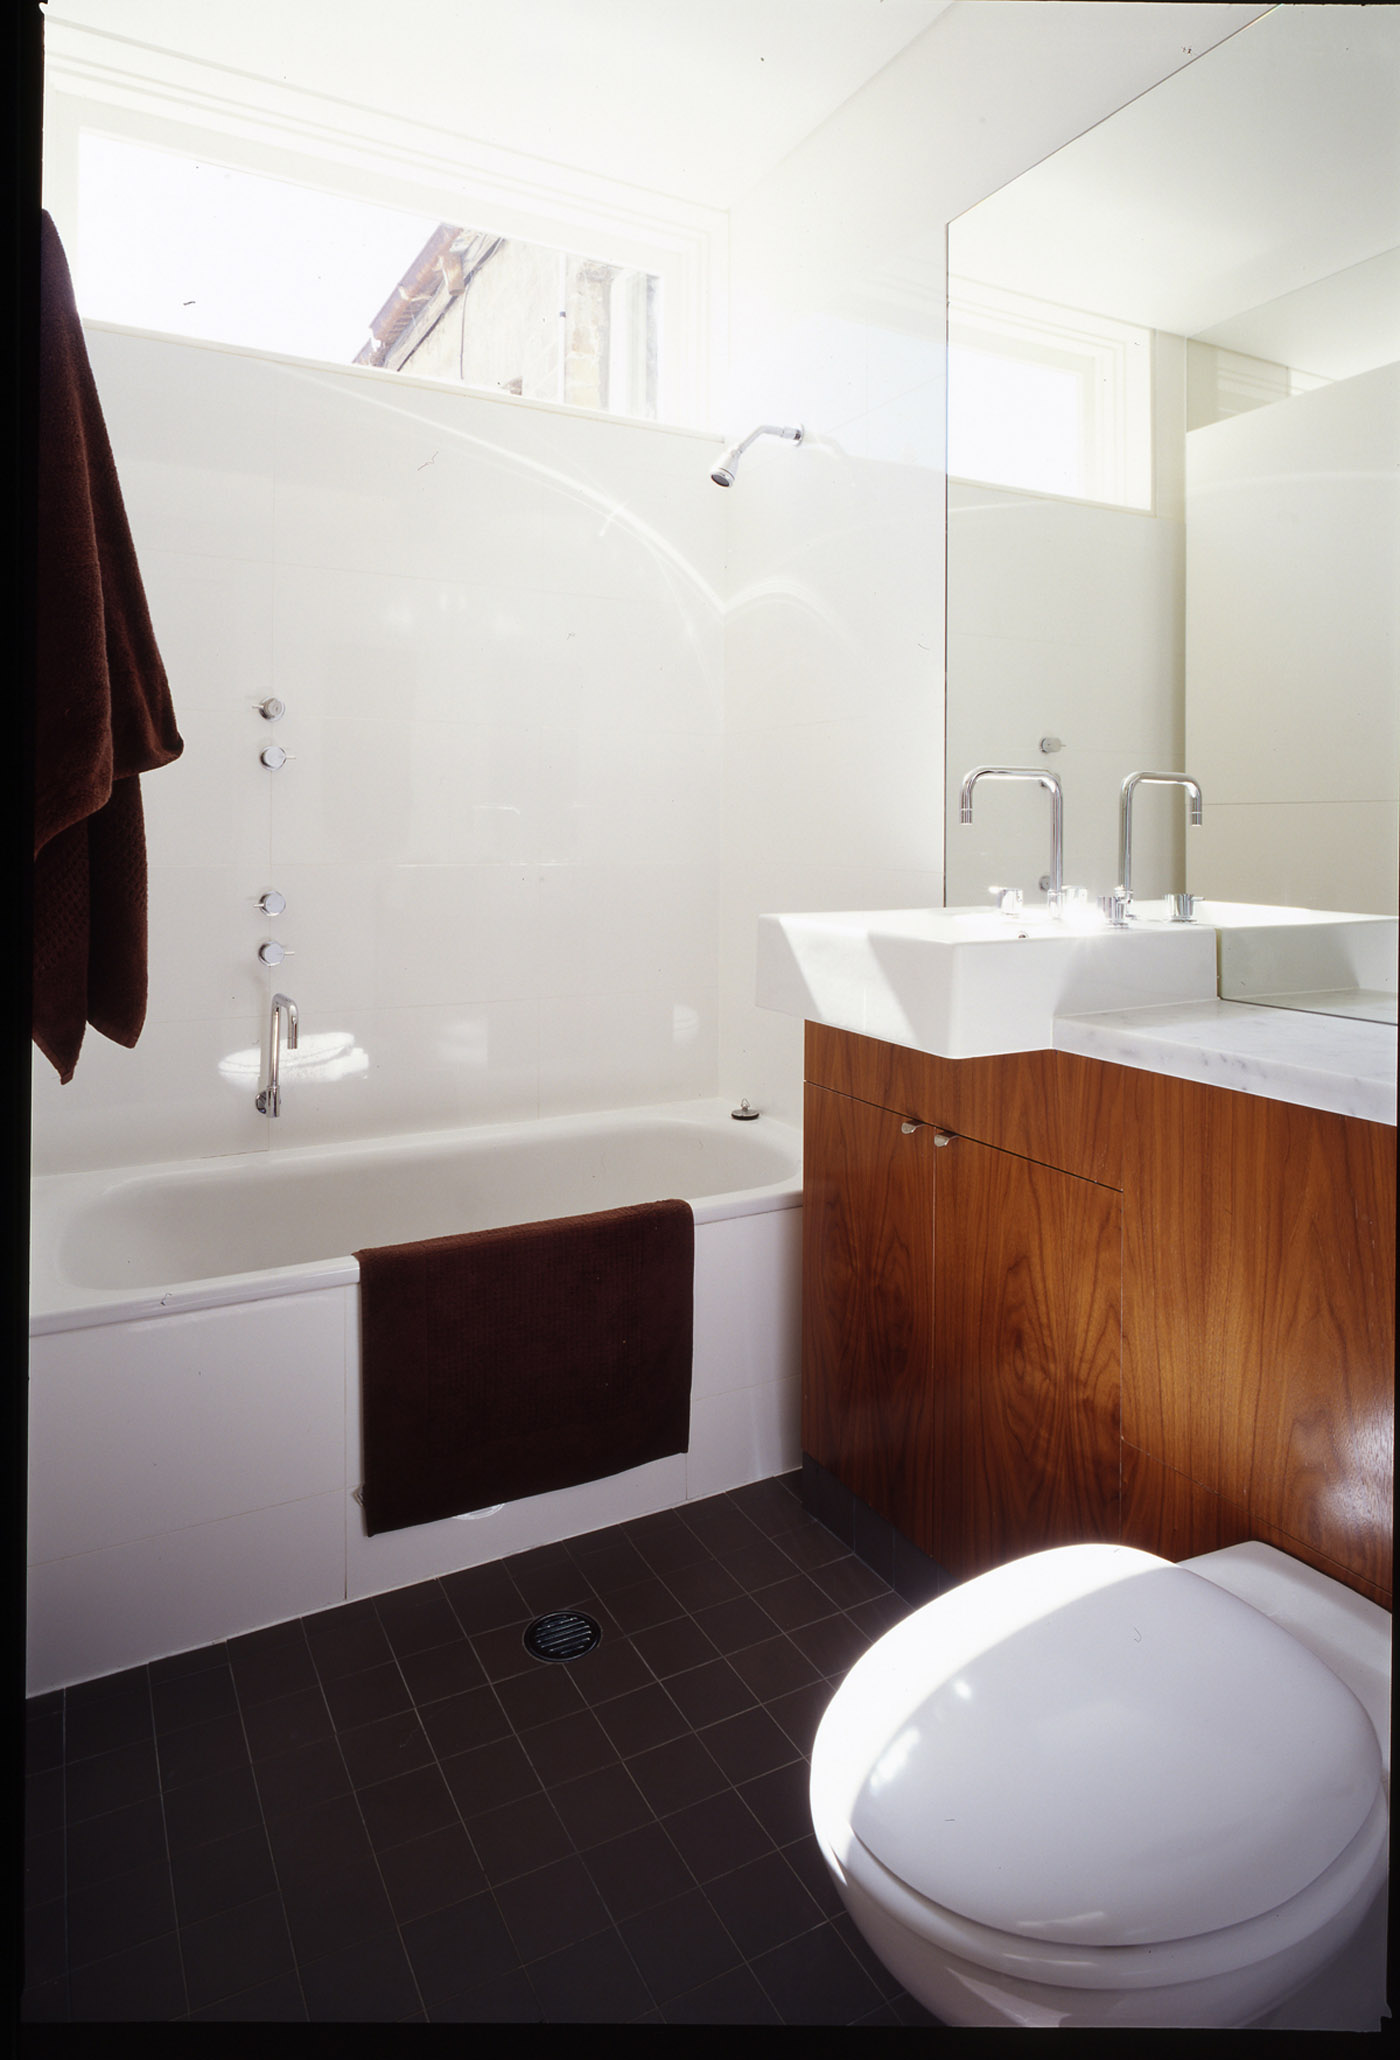 Wake Murphy House by Sydney award winning residential architecture office Sam Crawford Architects. Light filled compact bathroom with timber joinery.